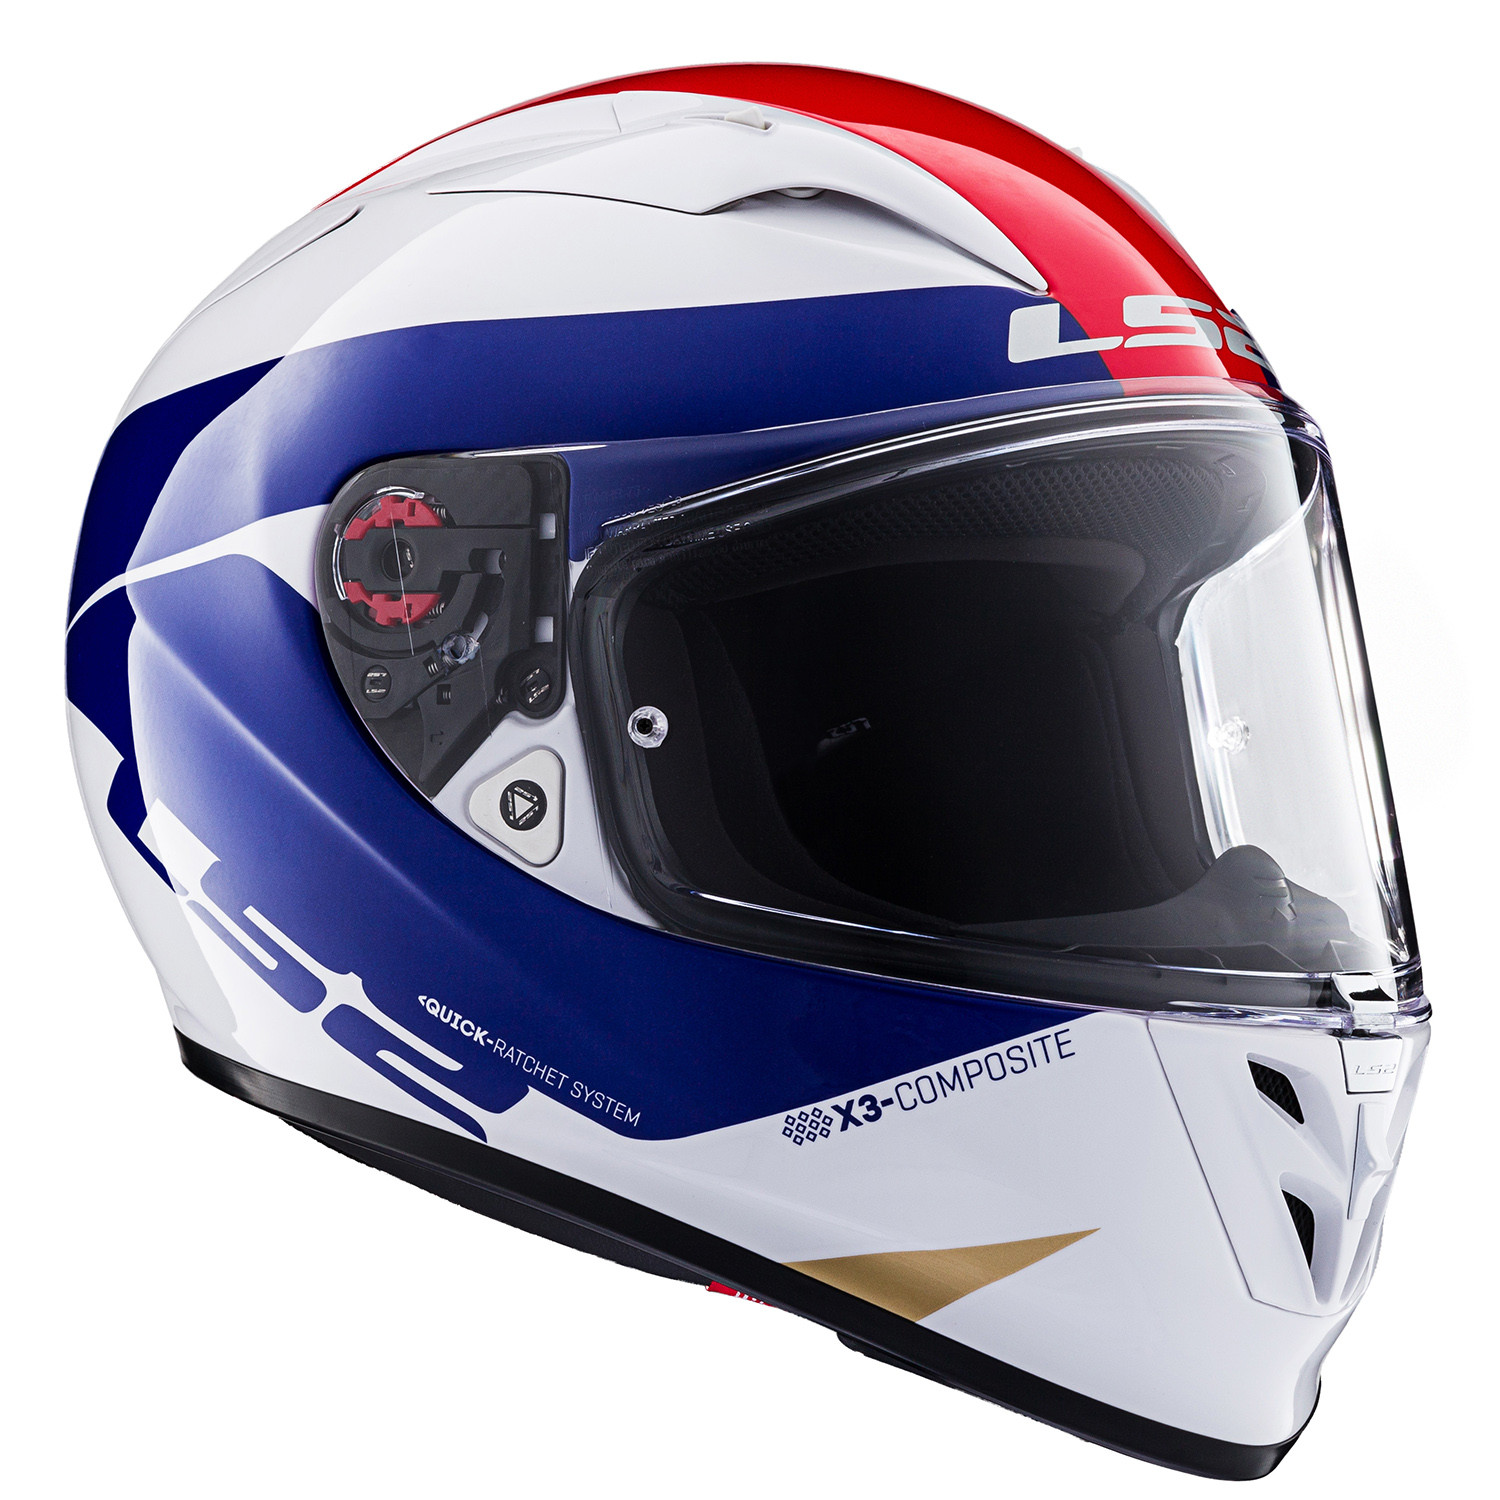 Casco Integral LS2 FF 323 Arrow R Comet